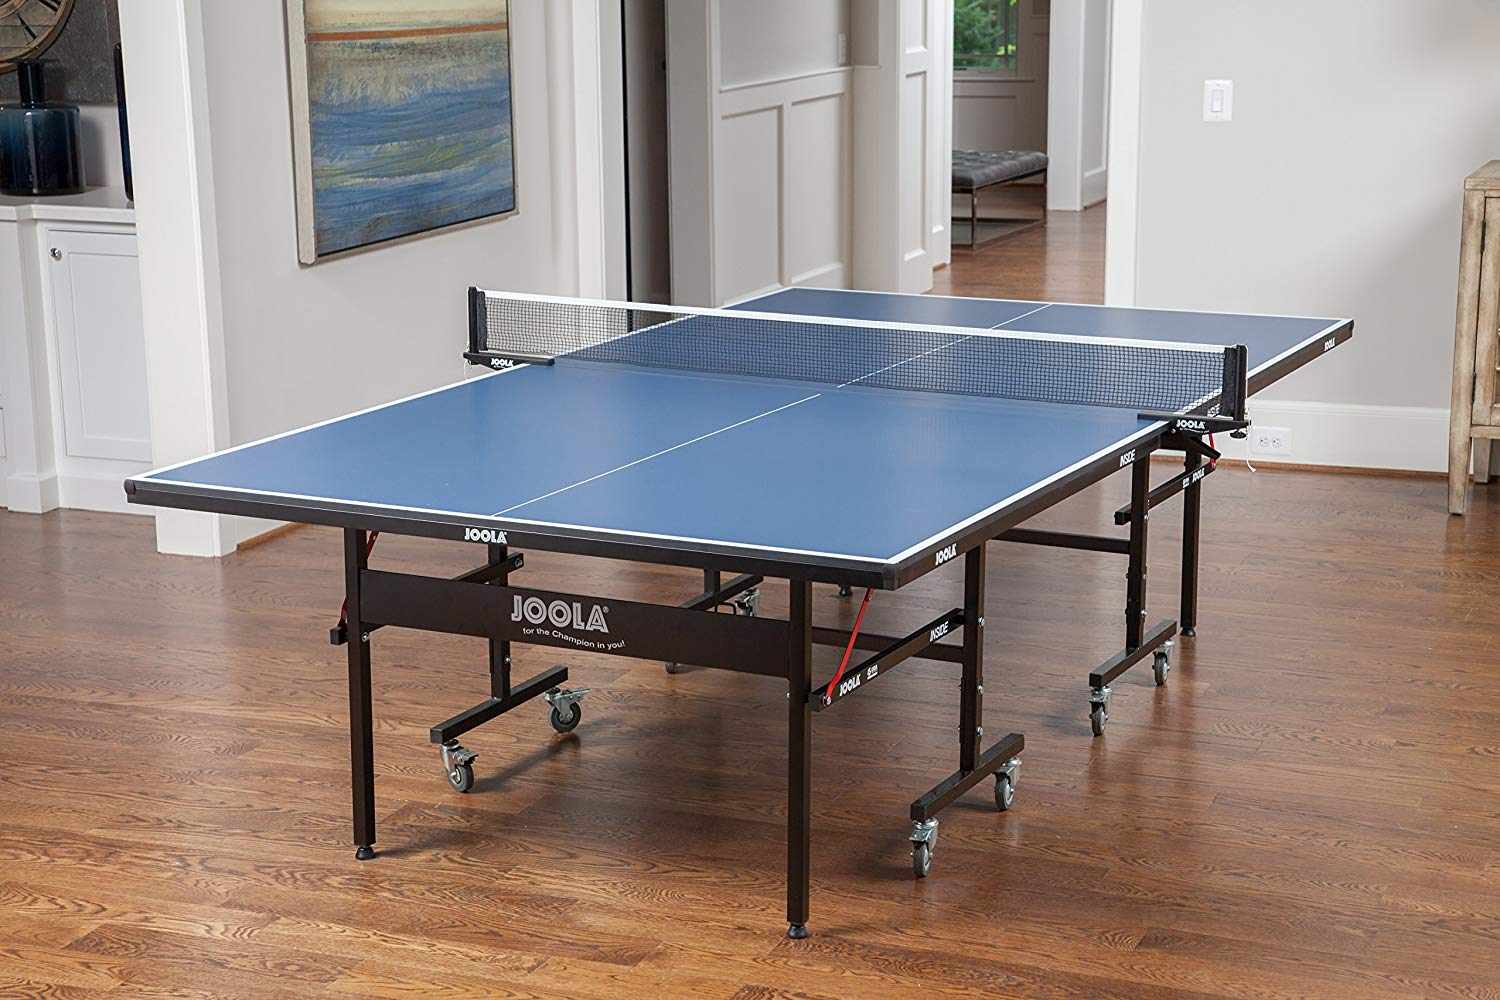 Joola Inside 15 Review Inexpensive Amp Recreational Table